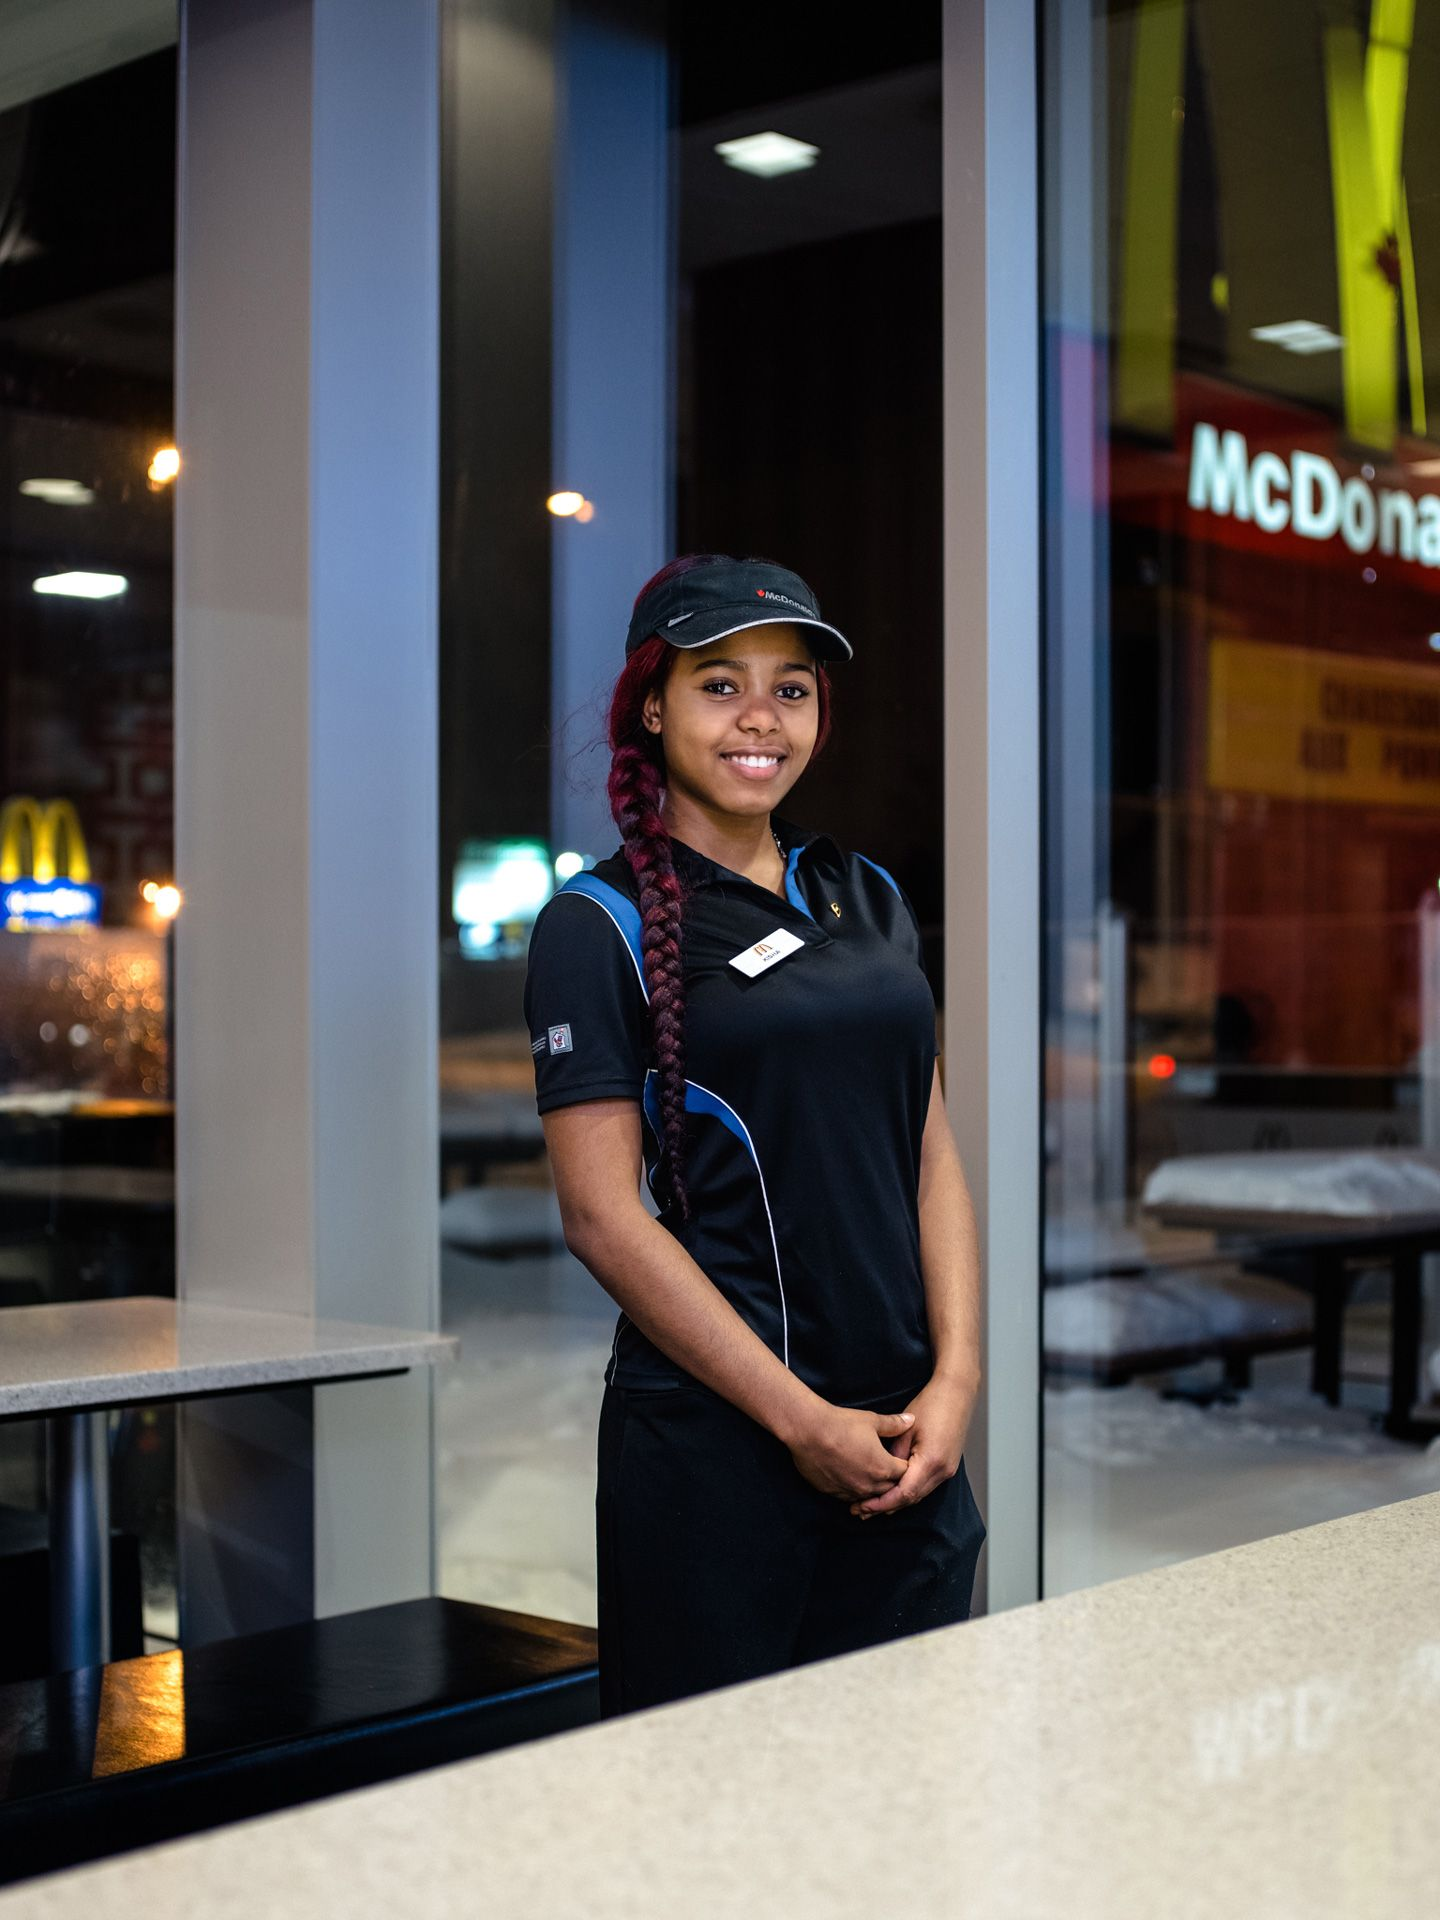 young black female employee smiling at camera by Alexi Hobbs for McDonald's